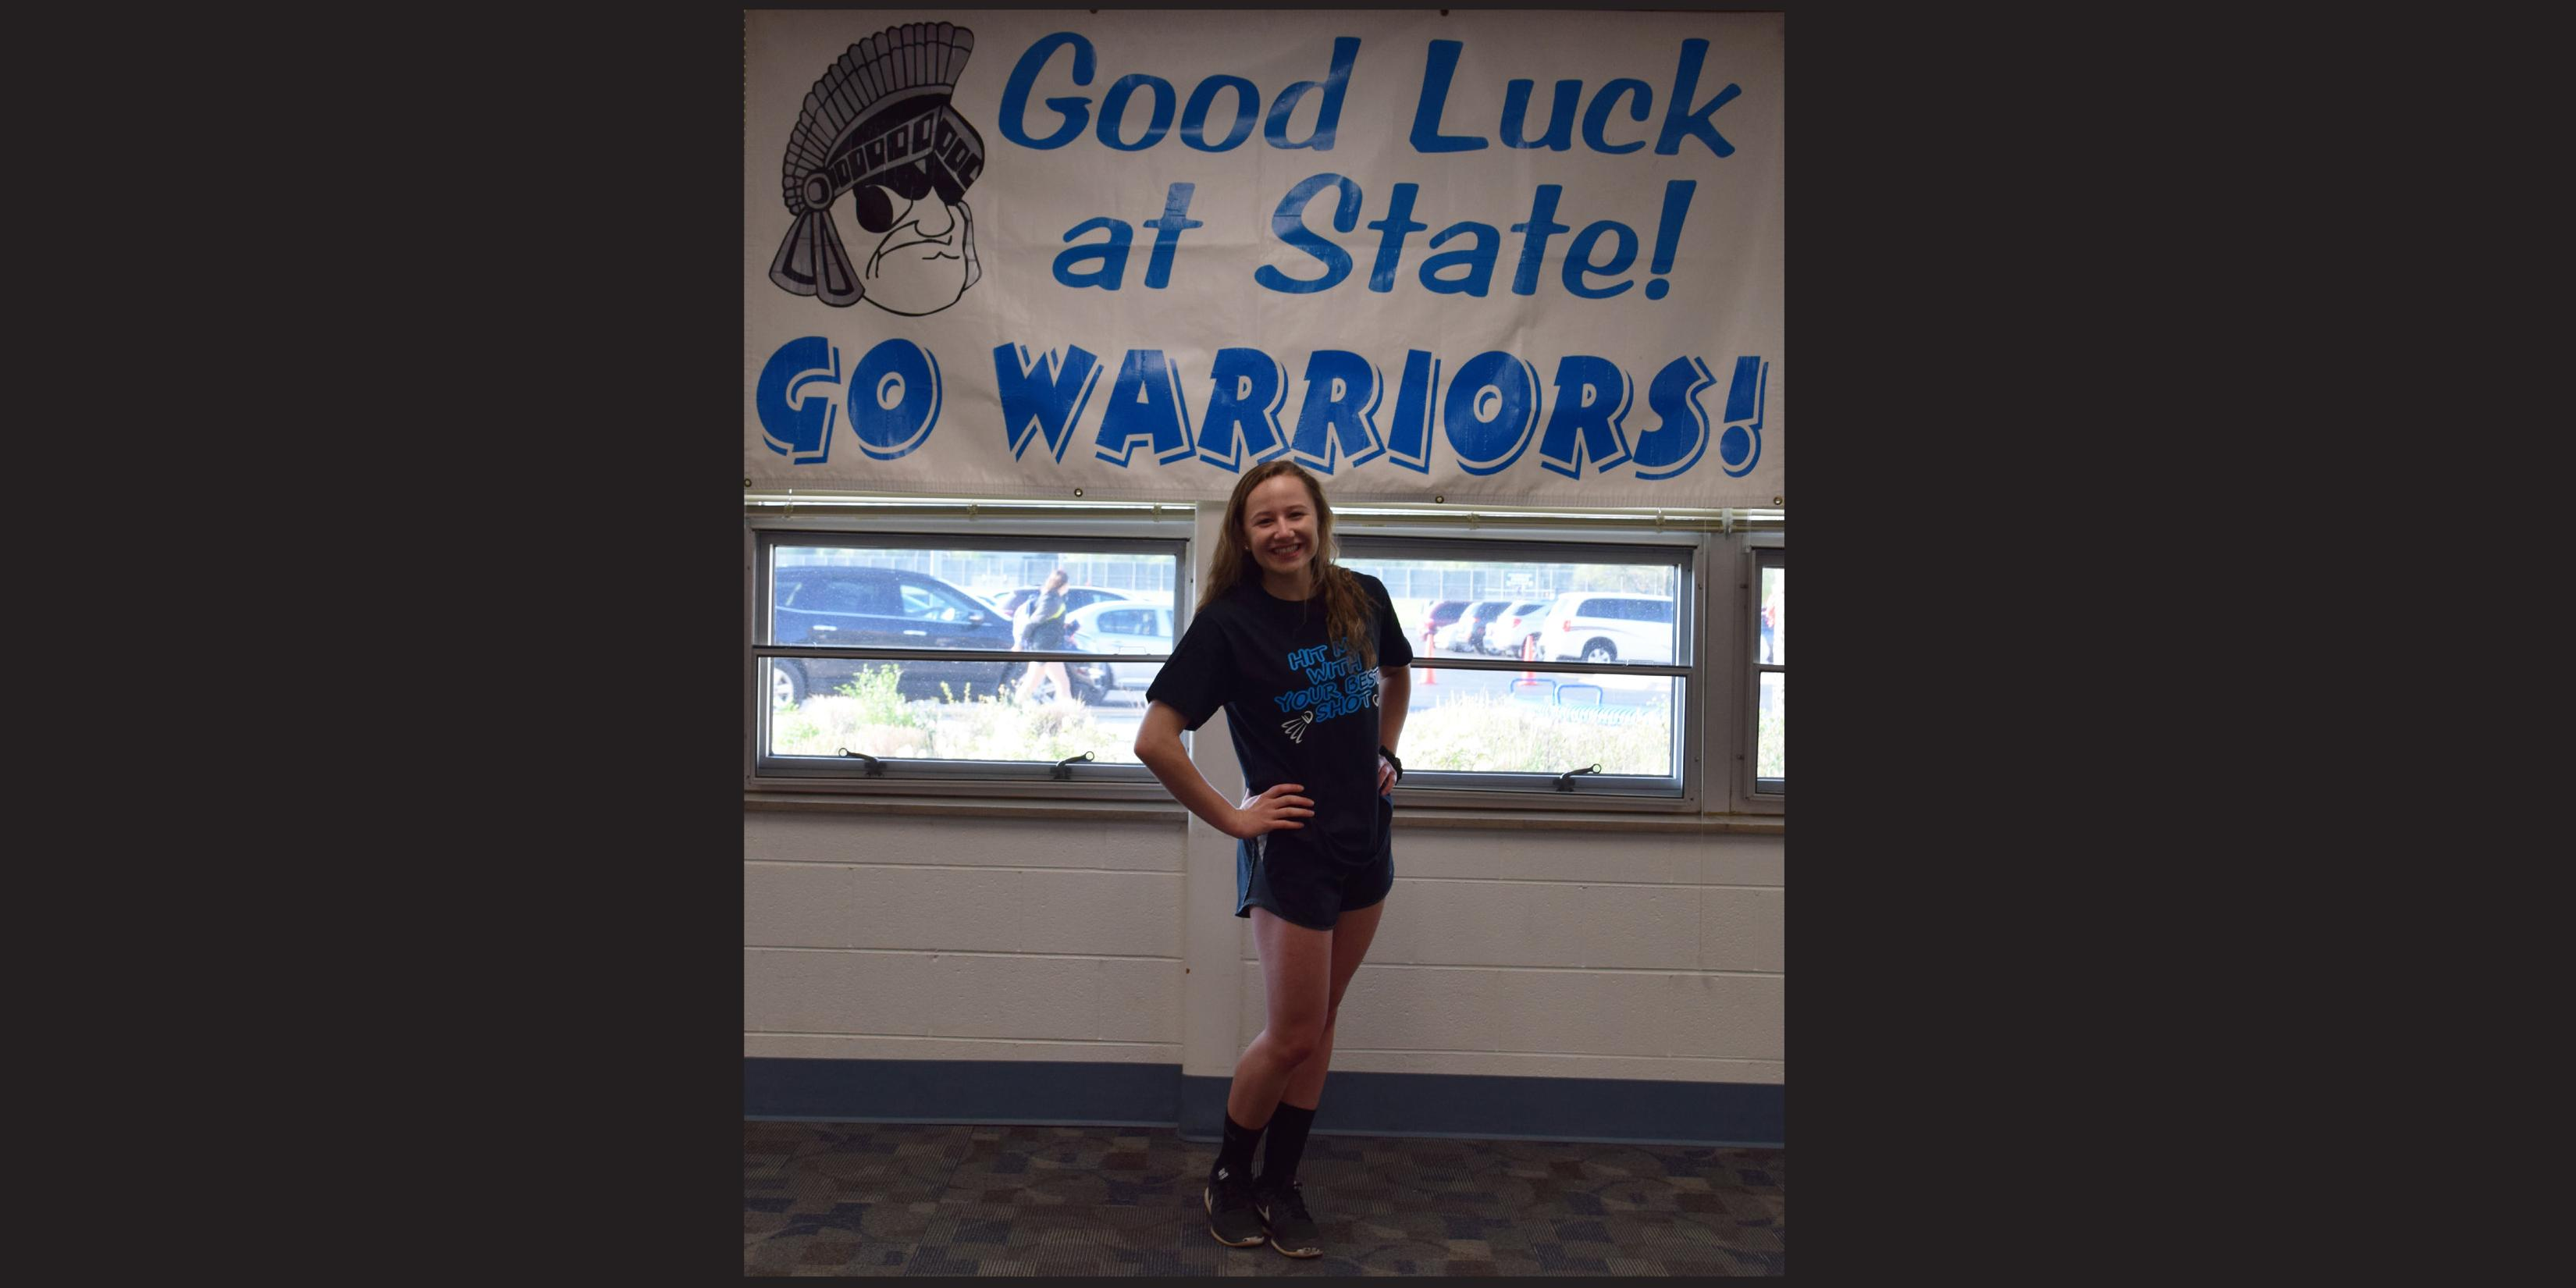 Willowbrook hosts State send-off celebration for member of Girls Badminton Team